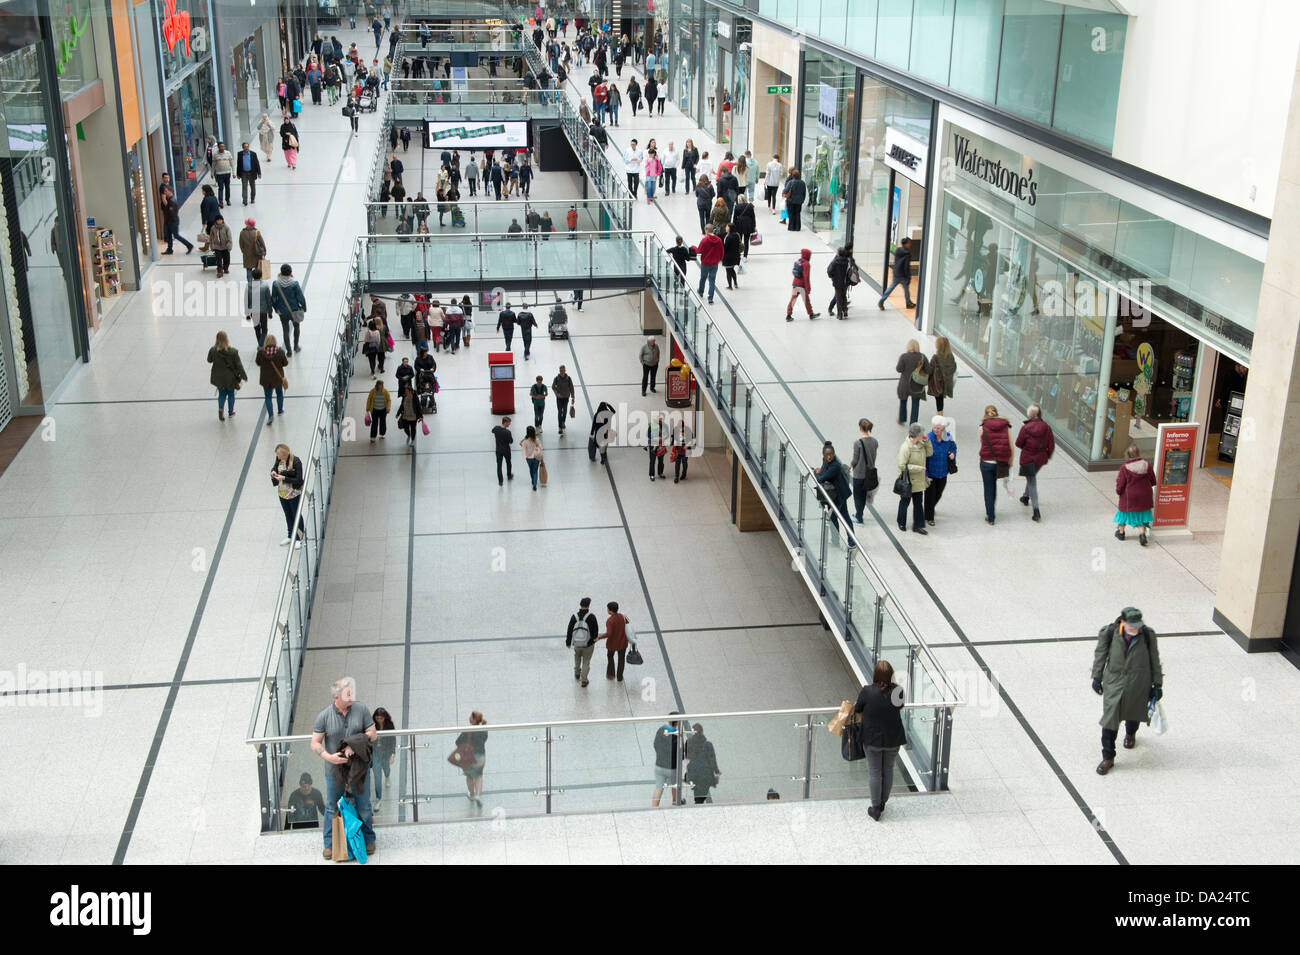 An internal shot of the busy Manchester Arndale shopping centre. - Stock Image